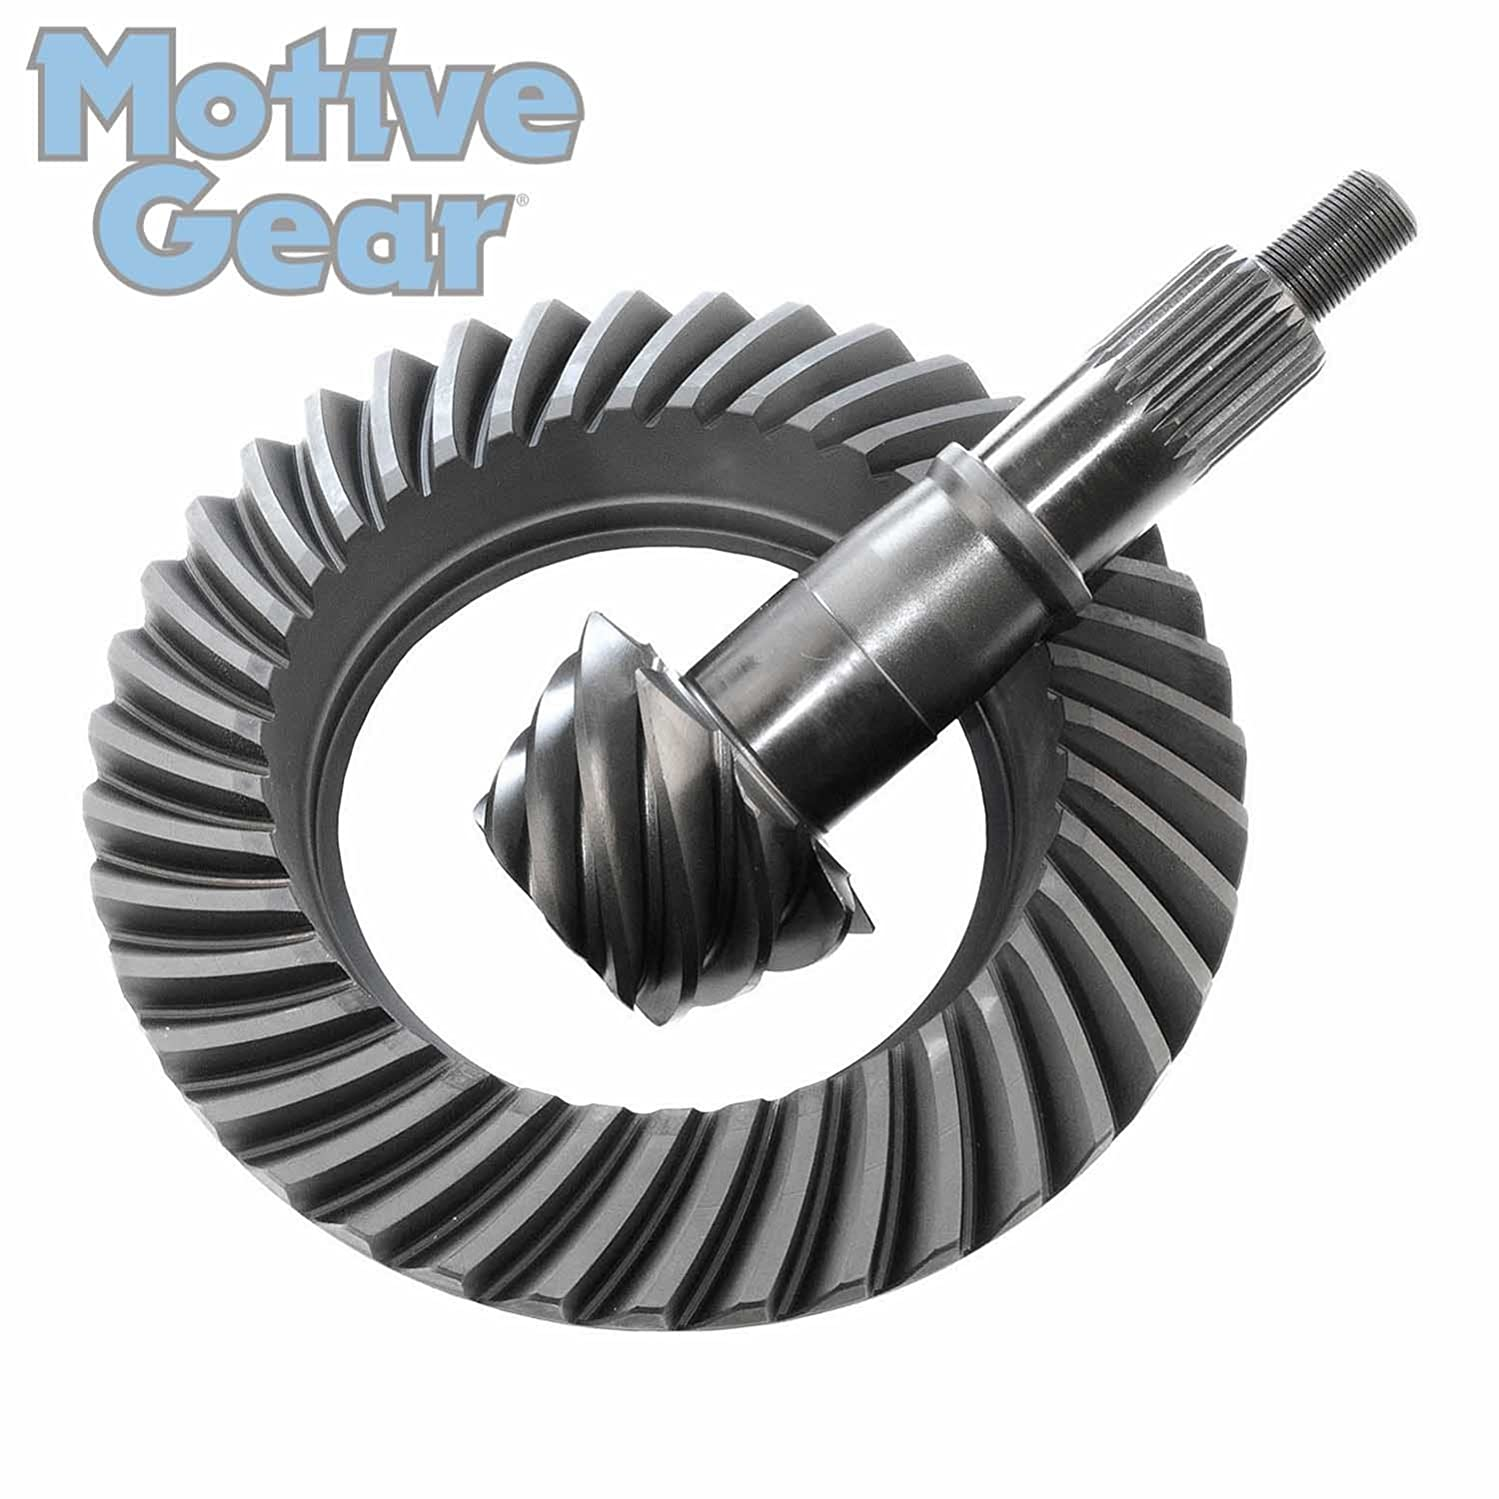 Motive Gear F8.8-488 Ring and Pinion (Ford 8.8